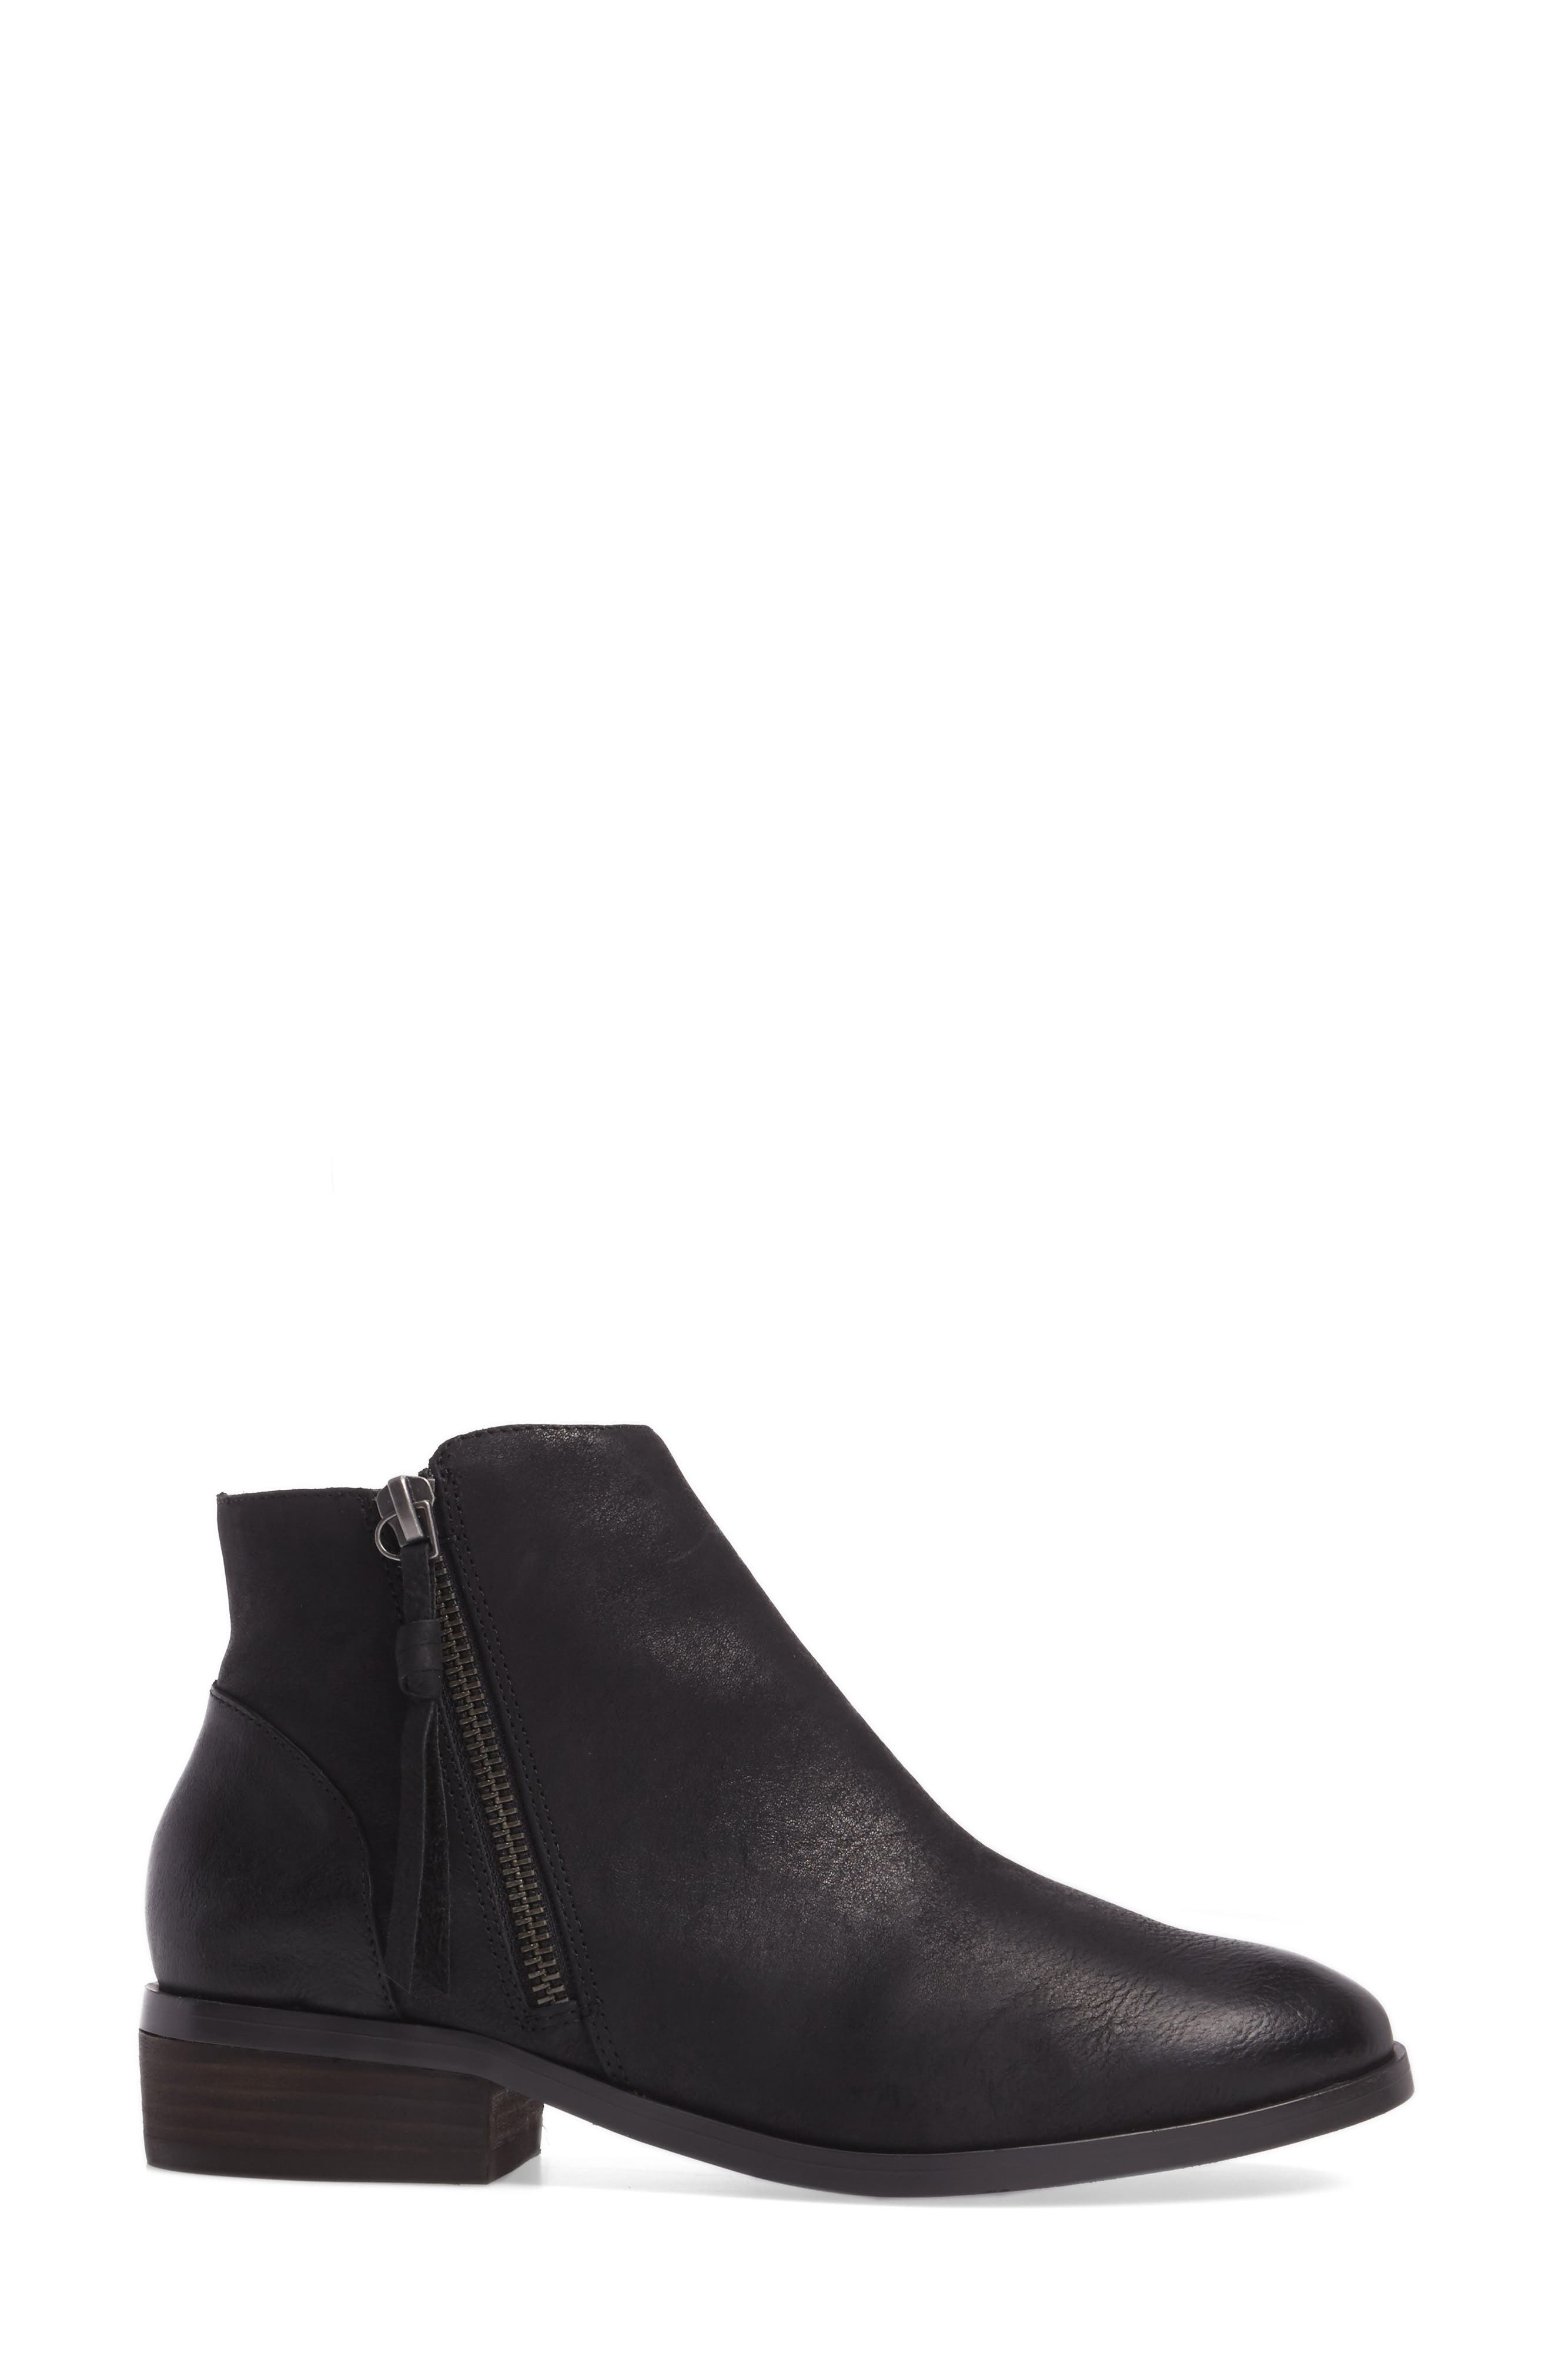 Abbott Bootie,                             Alternate thumbnail 3, color,                             BLACK LEATHER